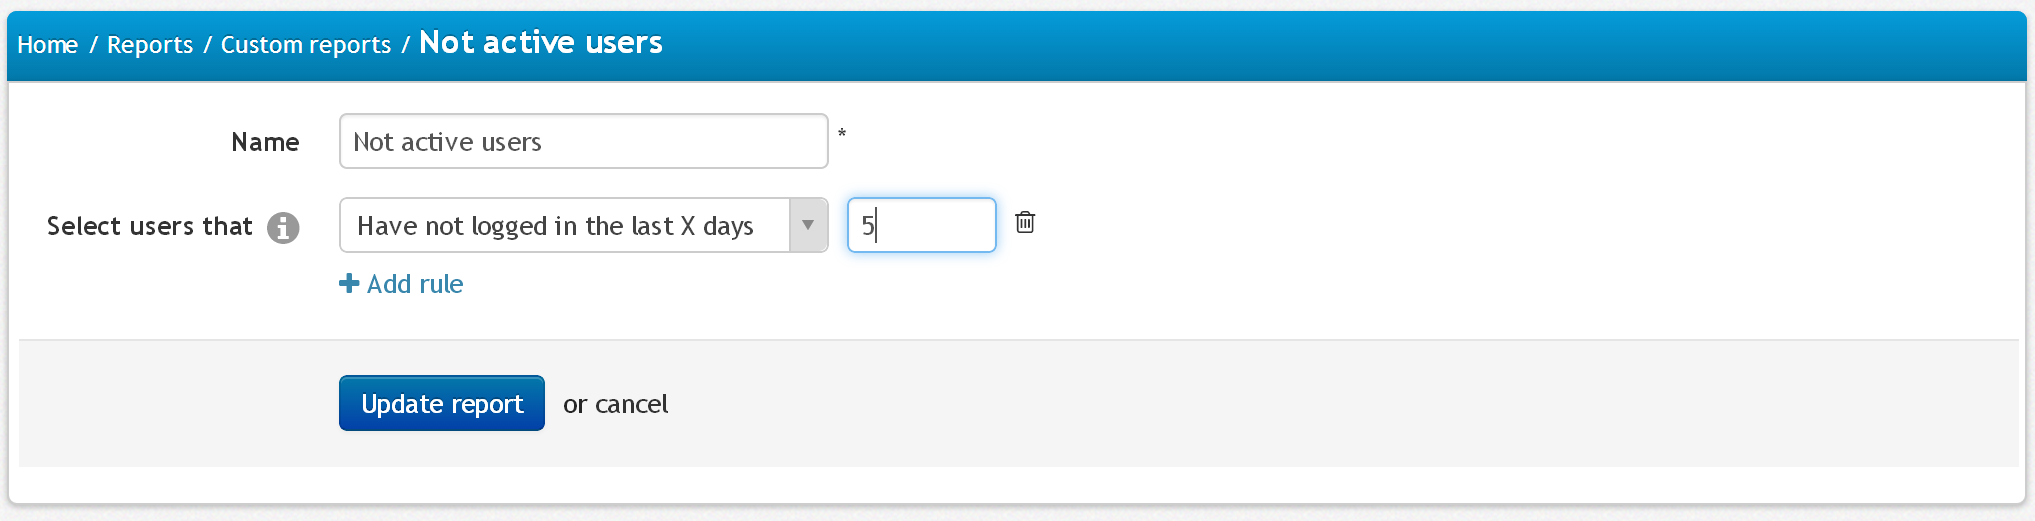 Picture 1: Select users without activity